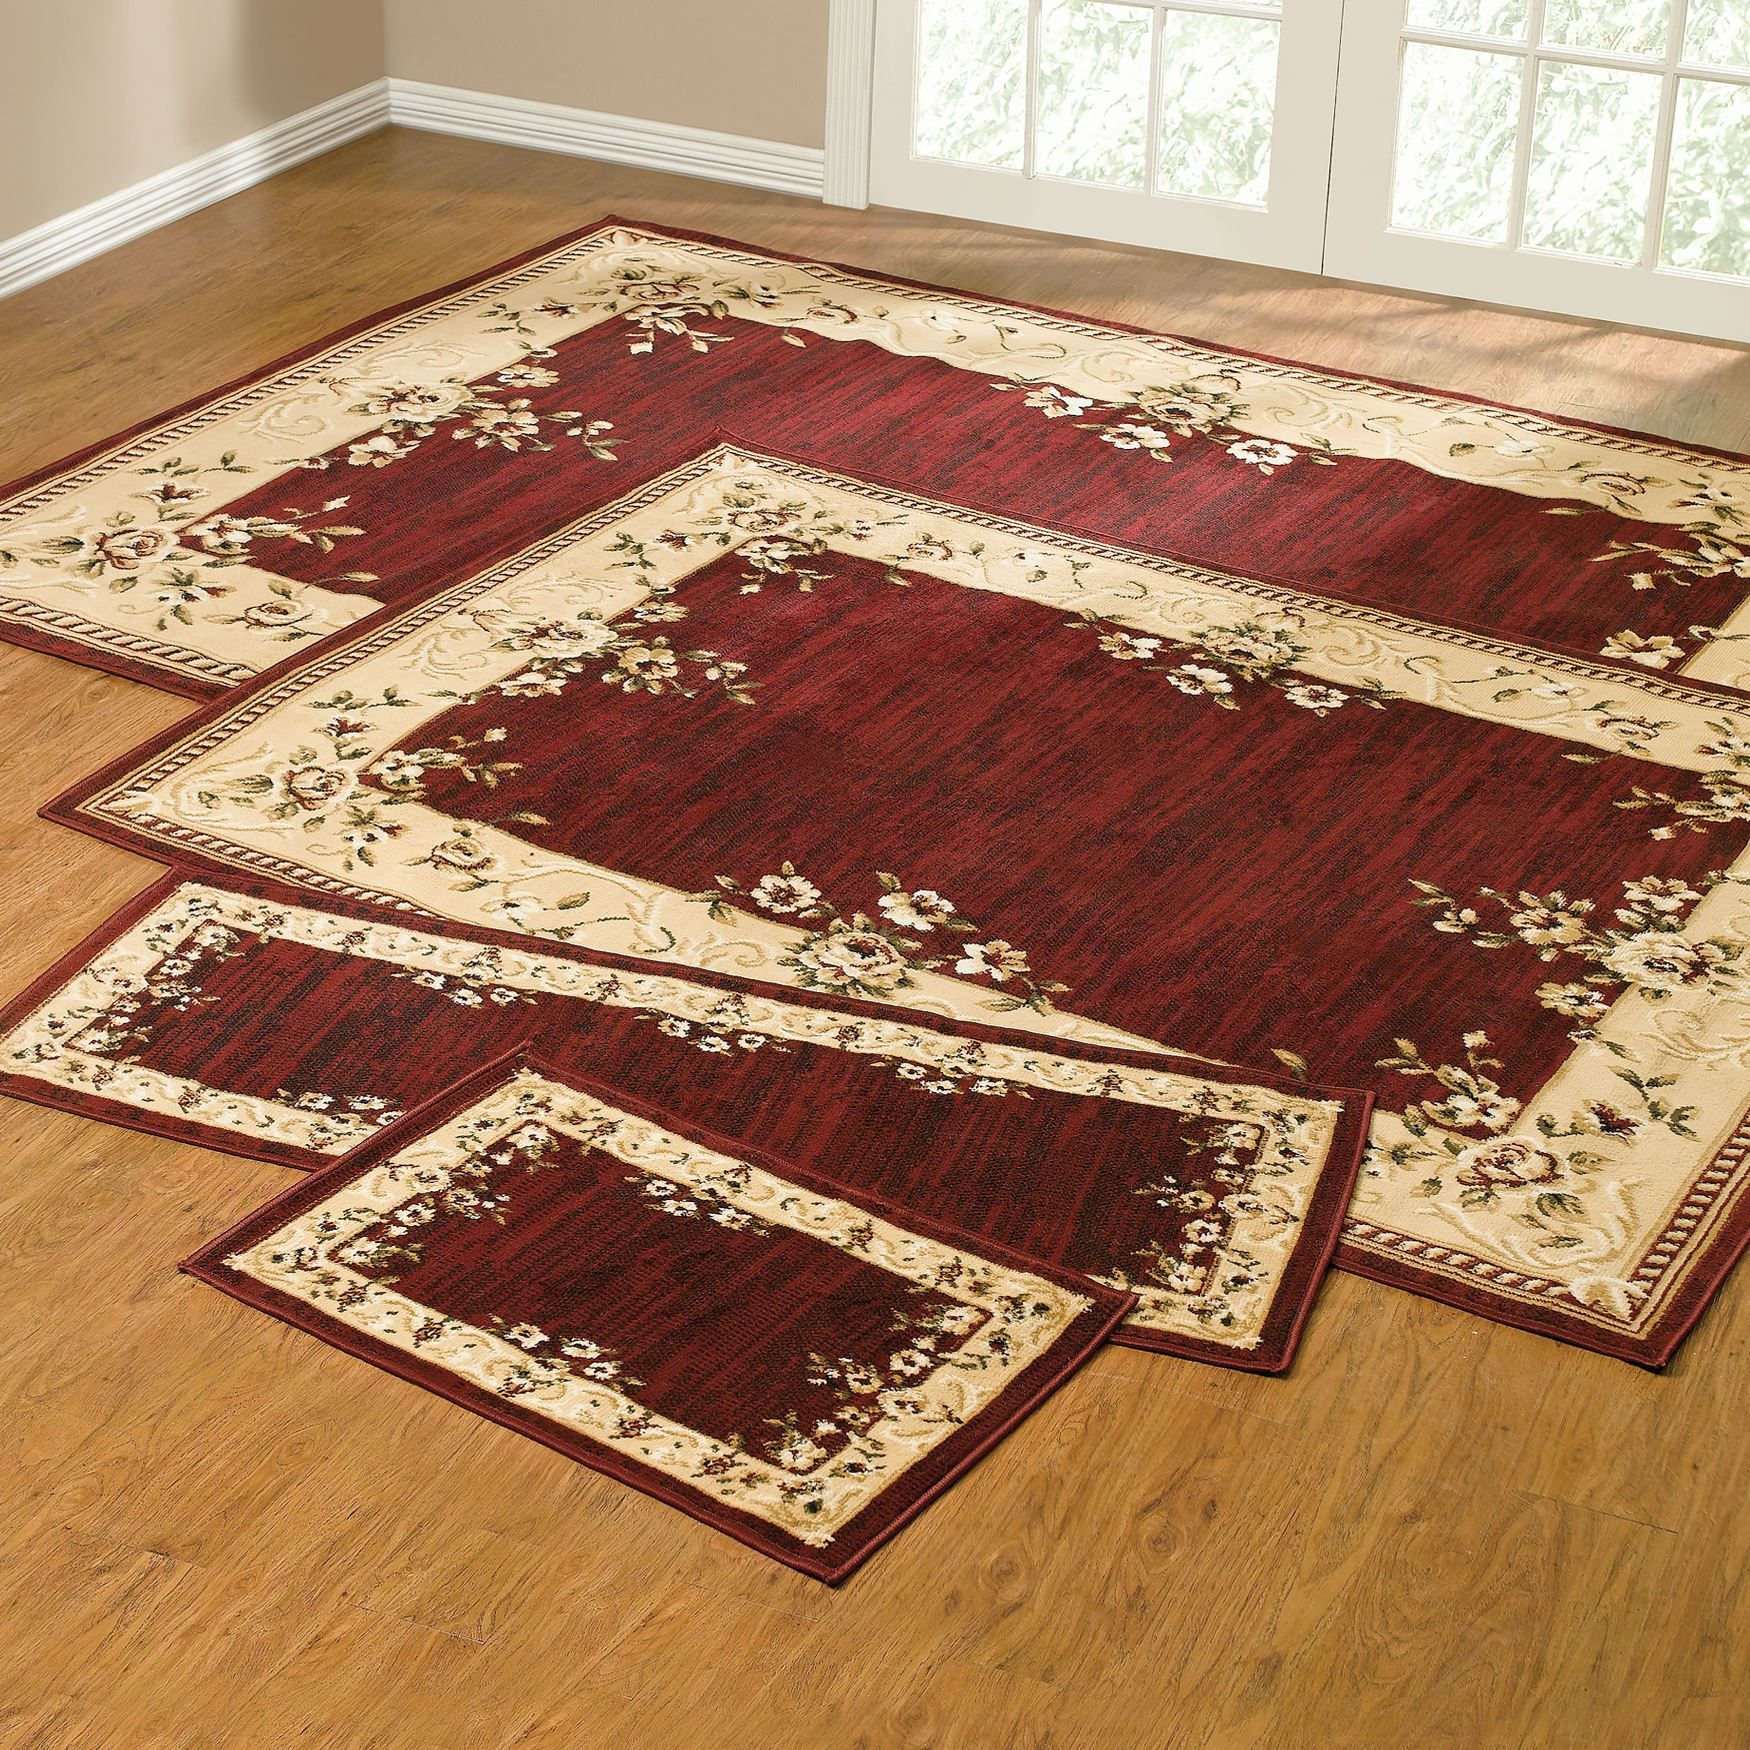 Rose Border 4 Pc Rug Set Shopswell Area Rugs Cheap Rug Sets